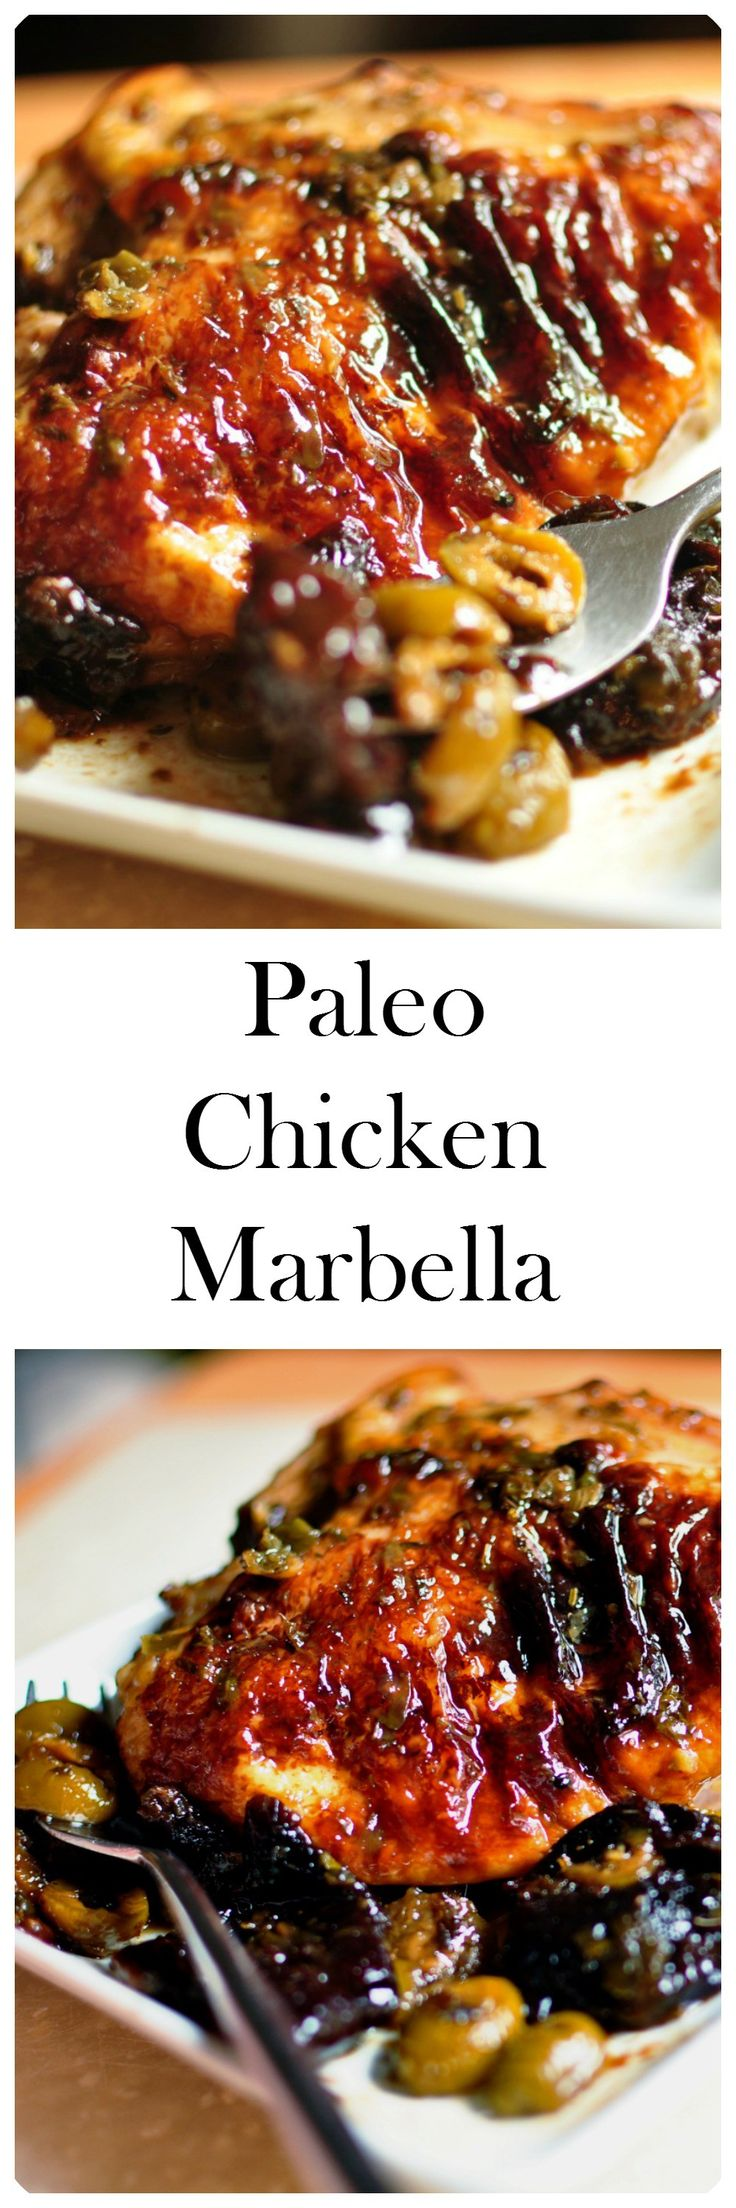 17 Best ideas about Chicken Marbella on Pinterest ...